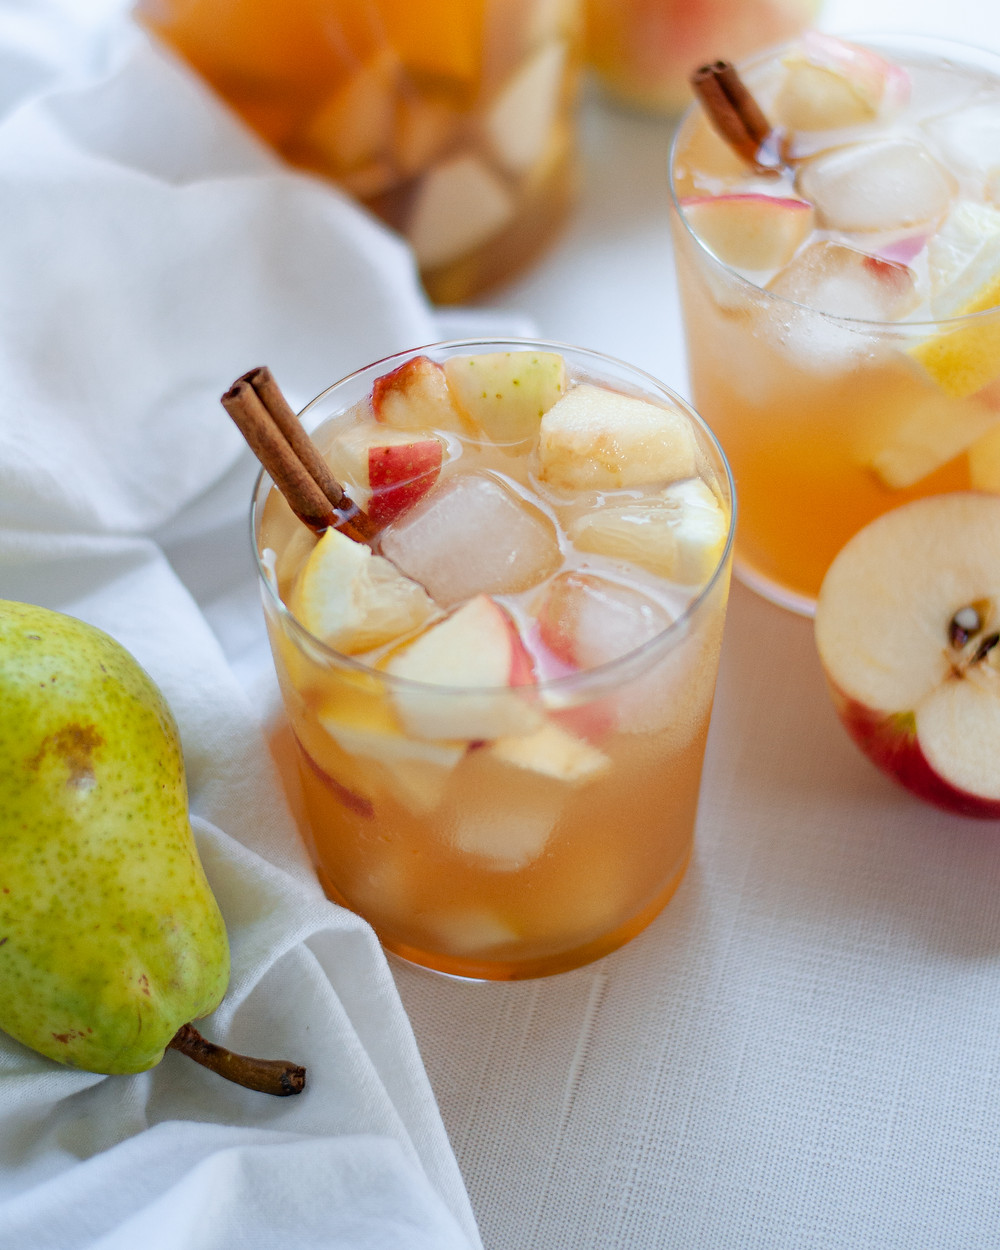 A glass filled with fall white wine sangria and garnished with a cinnamon stick. The glass is surrounded by pears and apples and a white napkin.